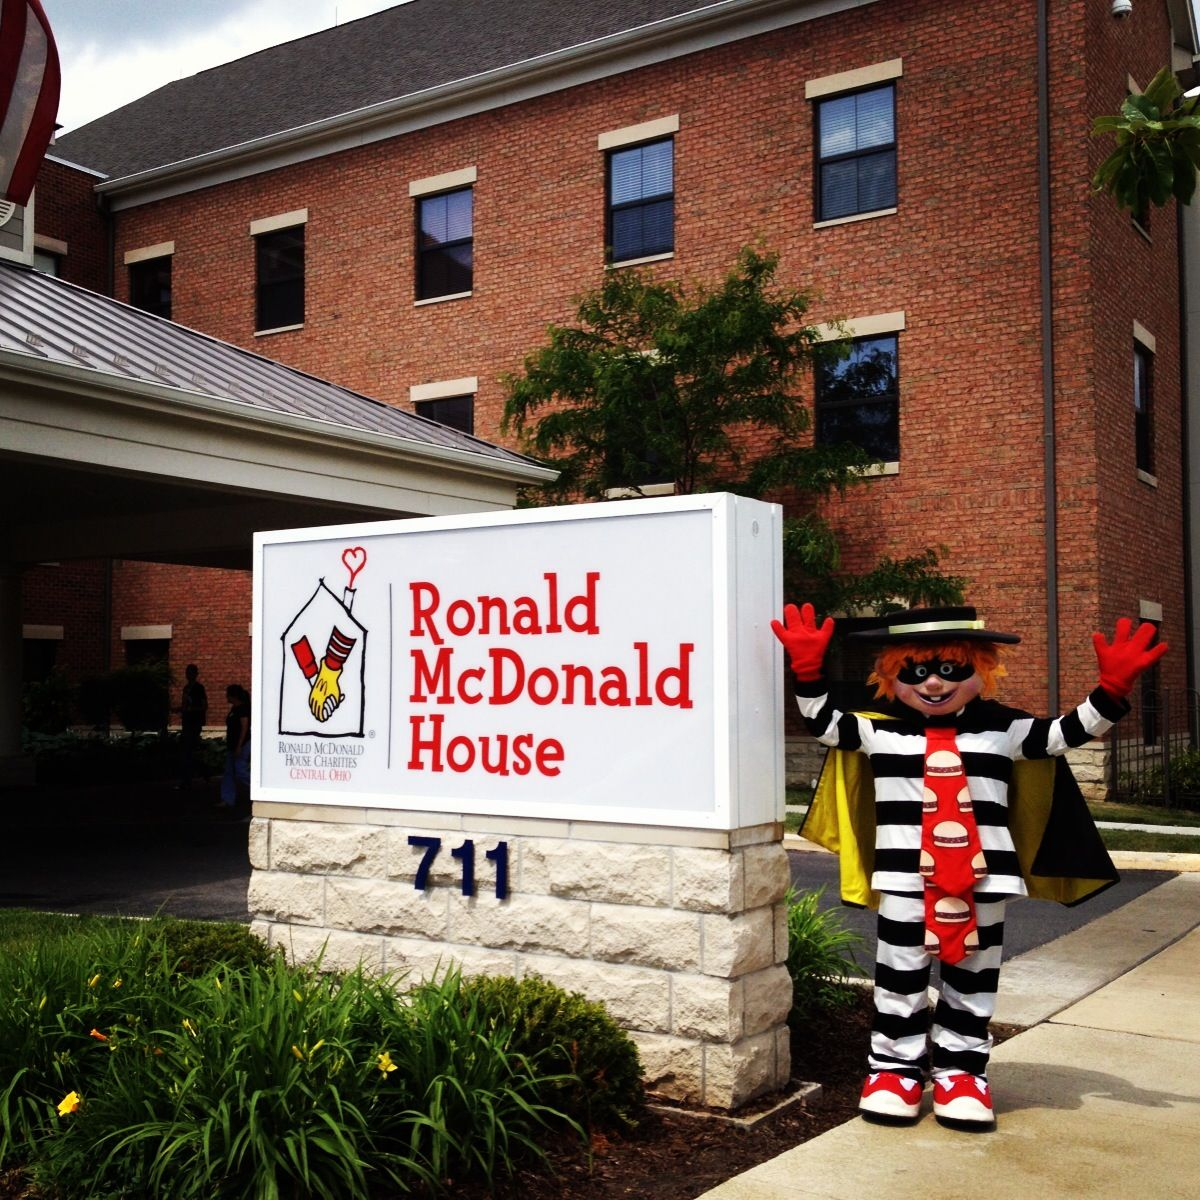 Pin by Mackenzie Schuler on RMHC Central Ohio | Pinterest